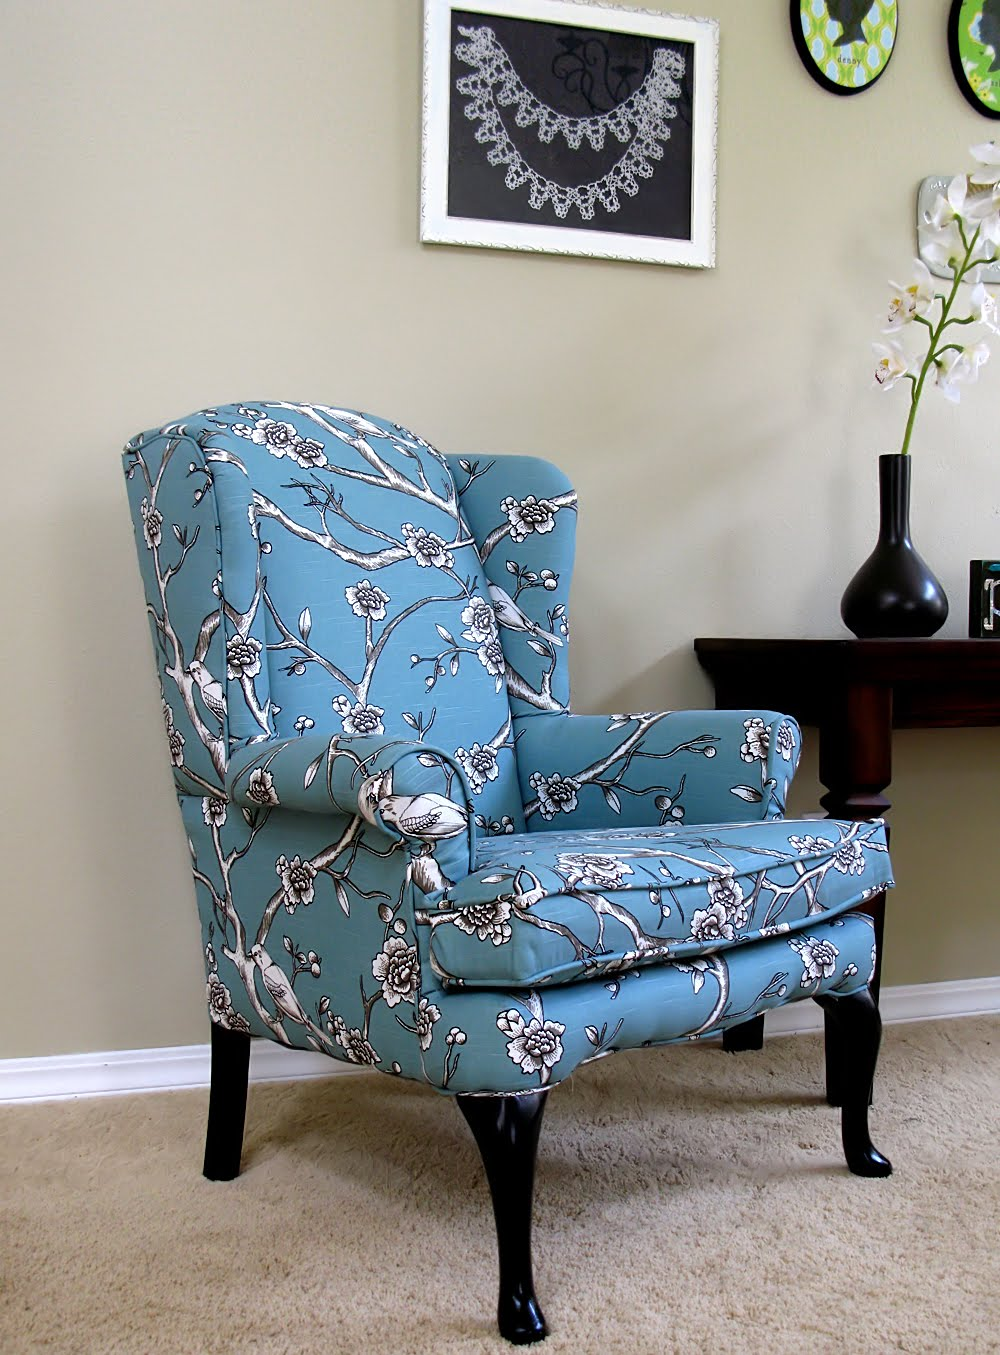 Wing Chair - Compare Prices, Reviews and Buy at Nextag - Price